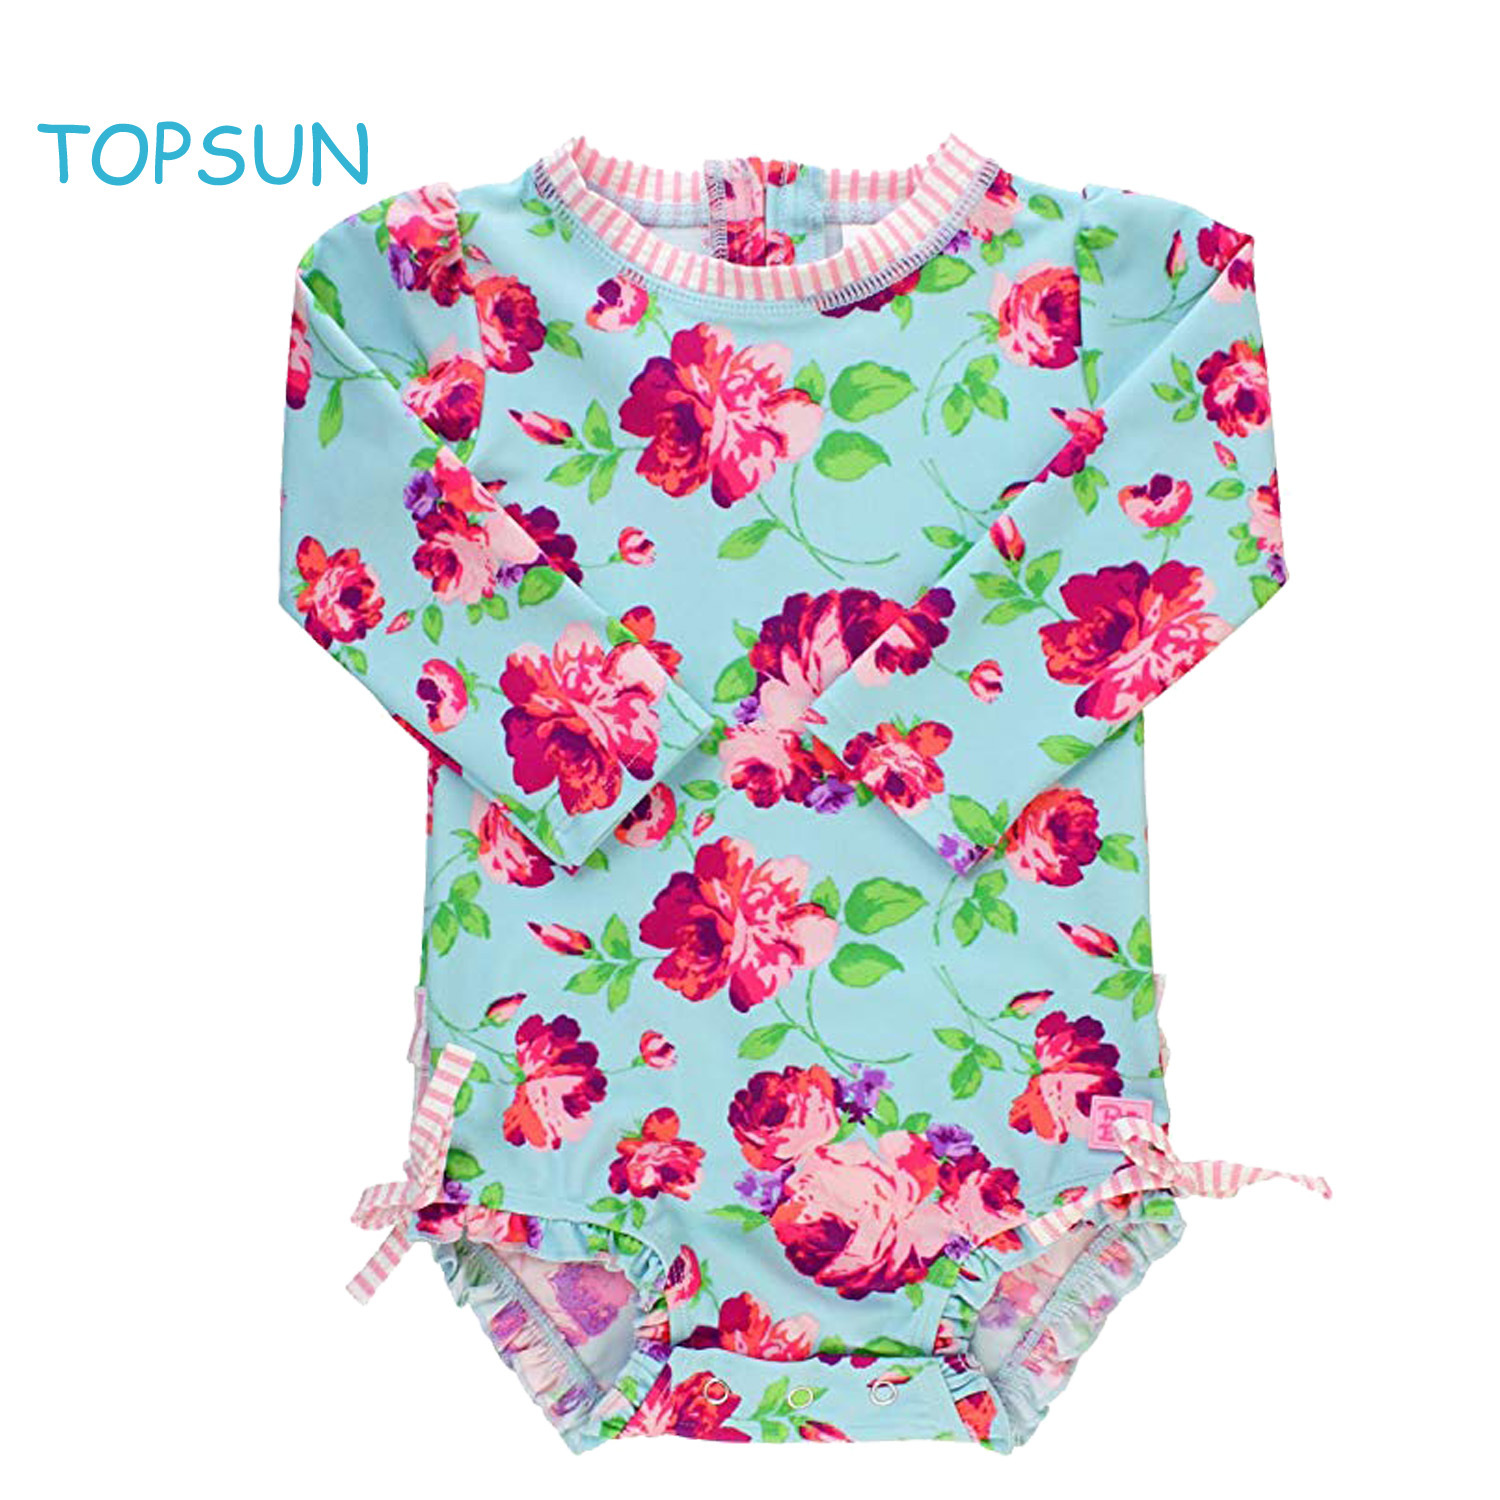 3bdfdb46f1 Baby/Toddler Girls Upf 50+ Sun Protection Long Sleeve One Piece Summer  Clothing with Zipper Butterfly Lace Printed Swimsuit